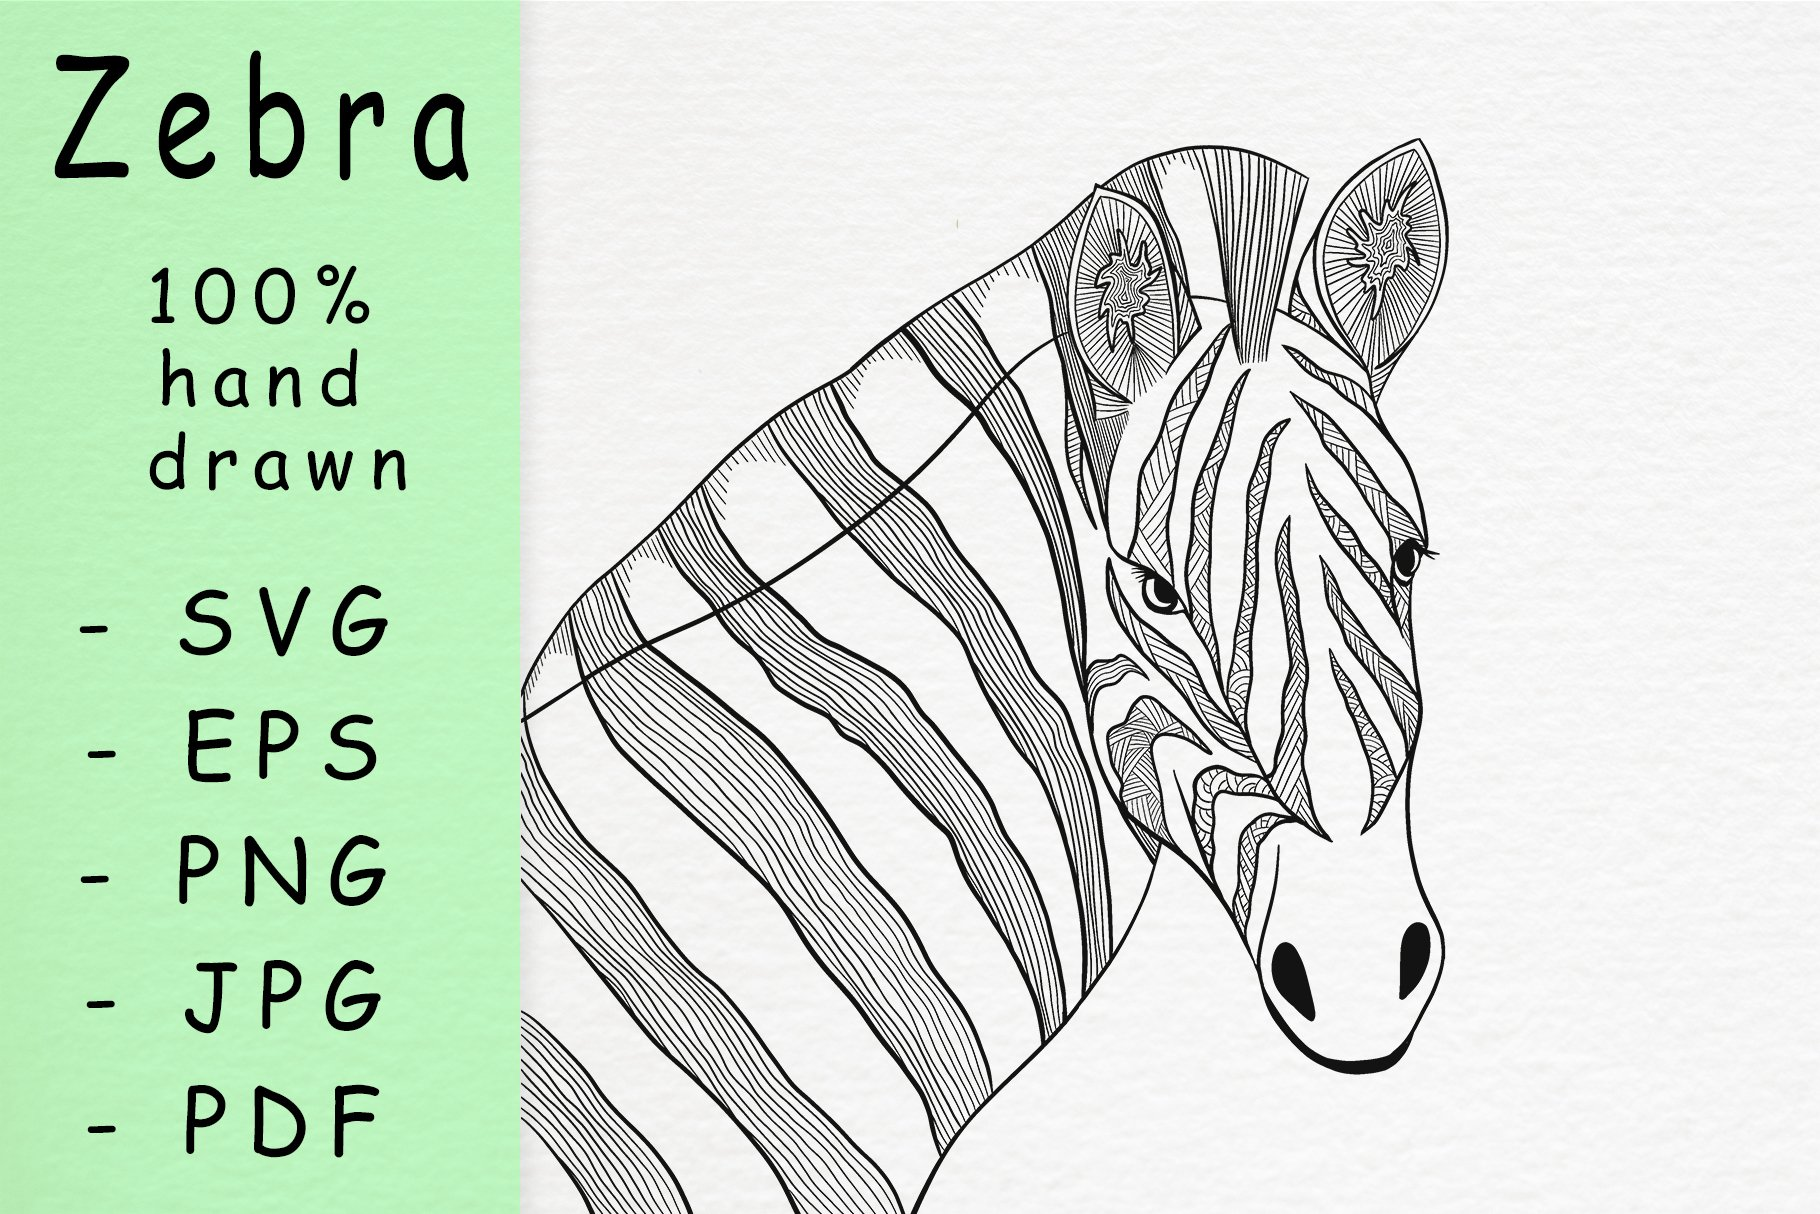 Hand drawn zebra head with patterns example image 1